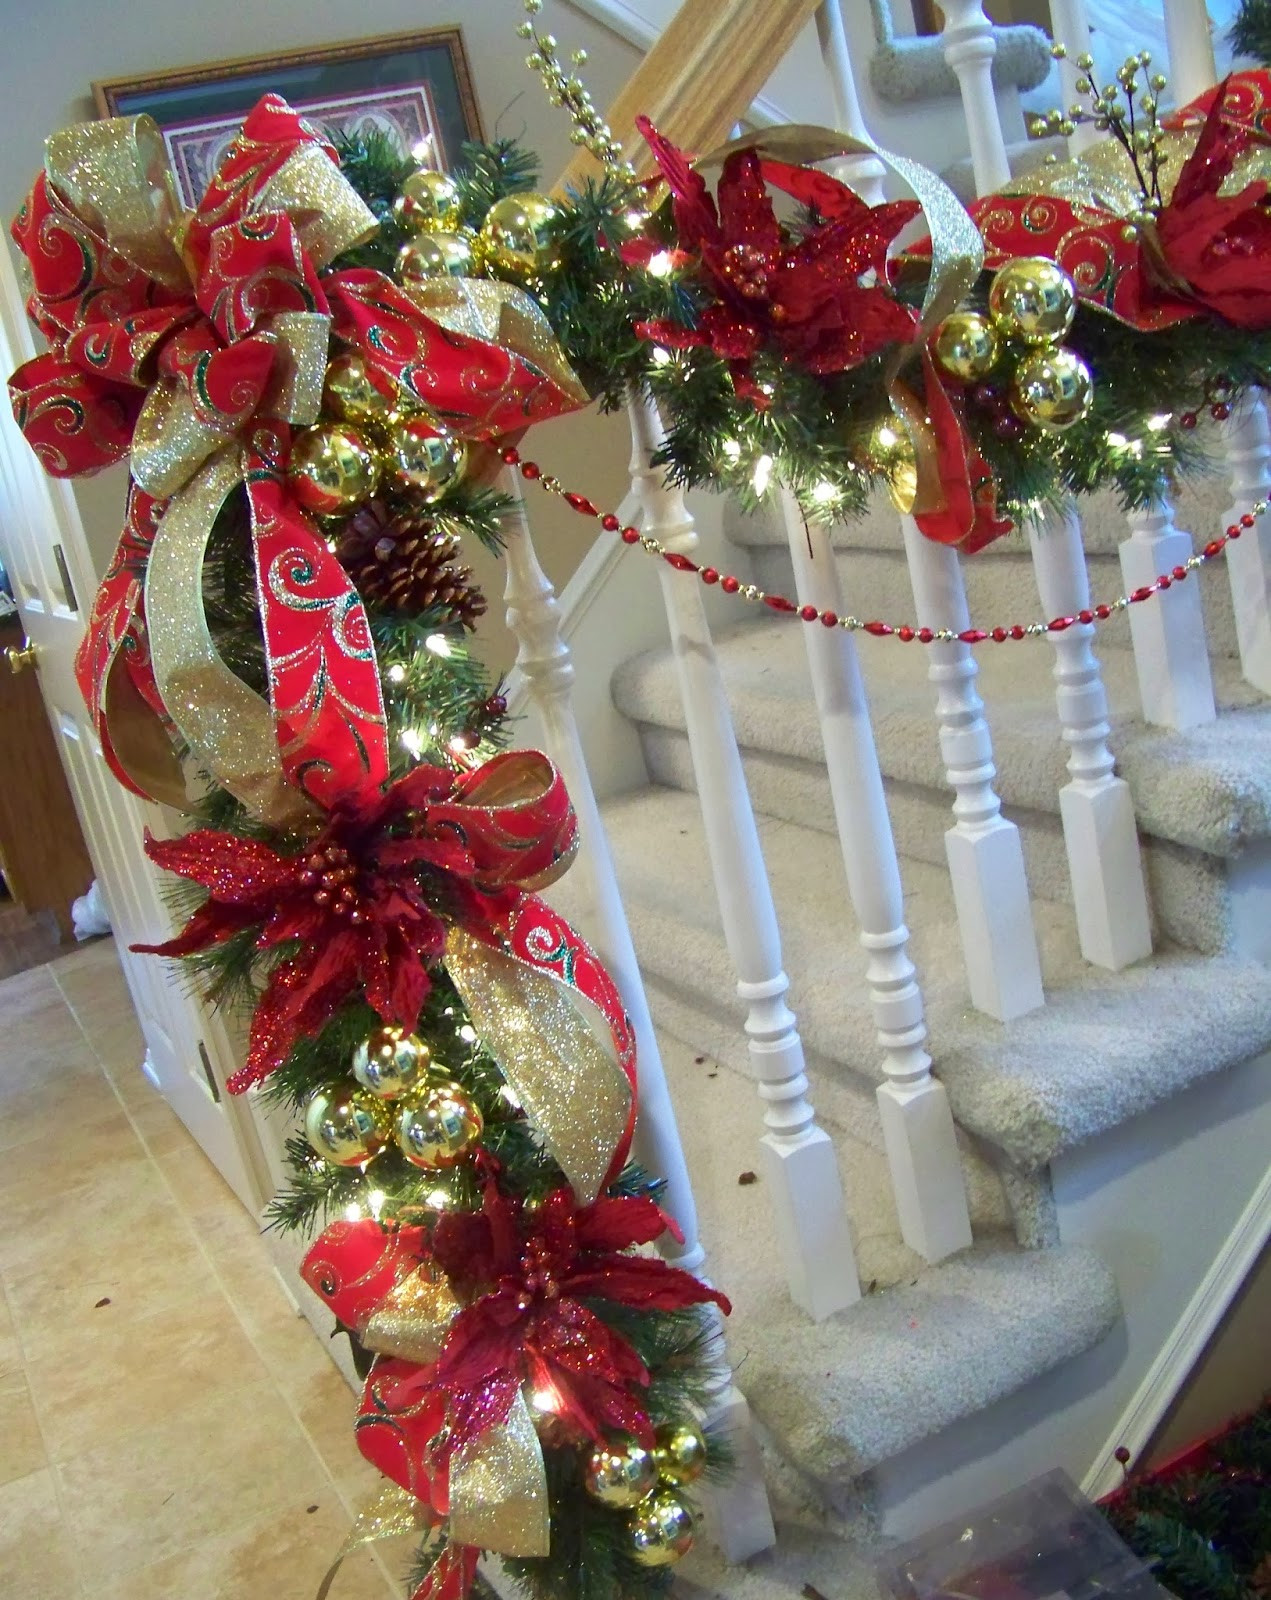 Best ideas about DIY Christmas Garlands . Save or Pin 50 Best DIY Christmas Garland Decorating Ideas for 2017 Now.